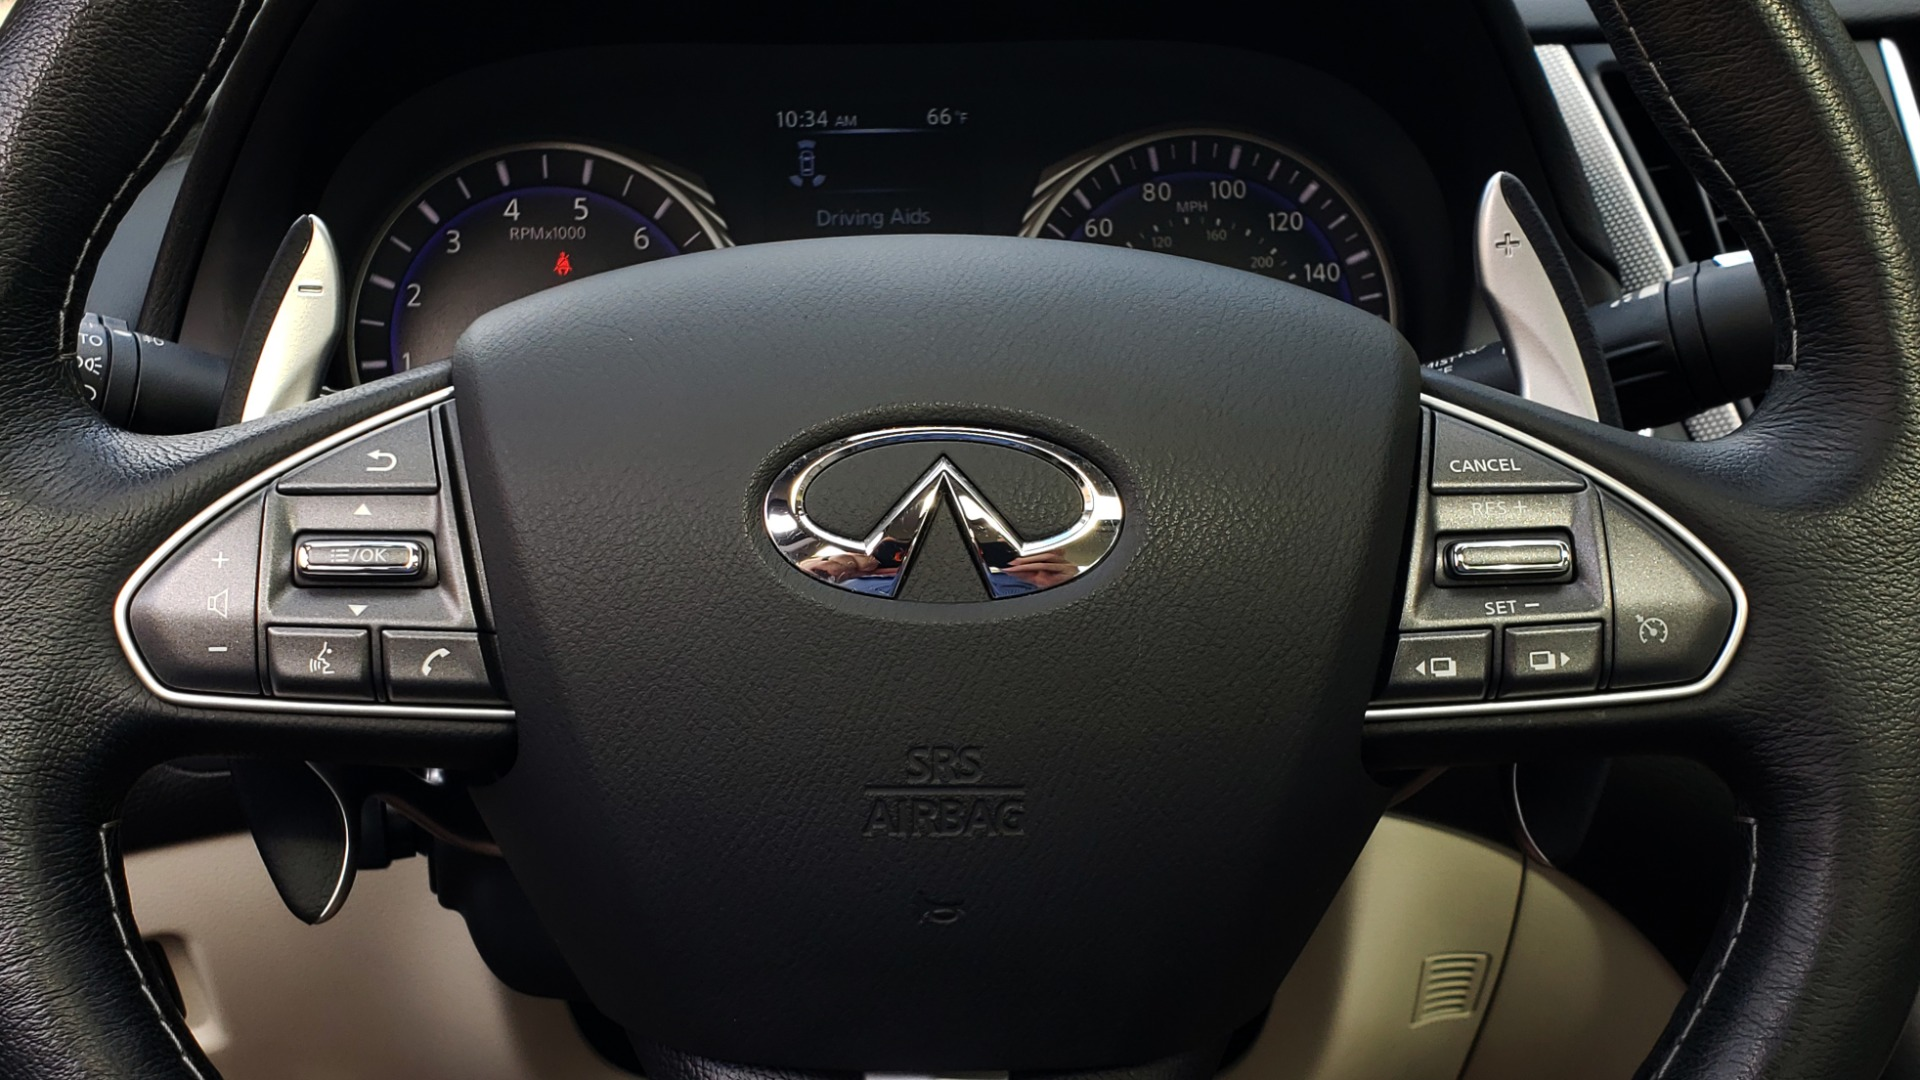 Used 2016 INFINITI Q50 3.0T RED SPORT 400 / NAV / PREM PLUS / BLIND SPOT / REARVIEW for sale $28,495 at Formula Imports in Charlotte NC 28227 40